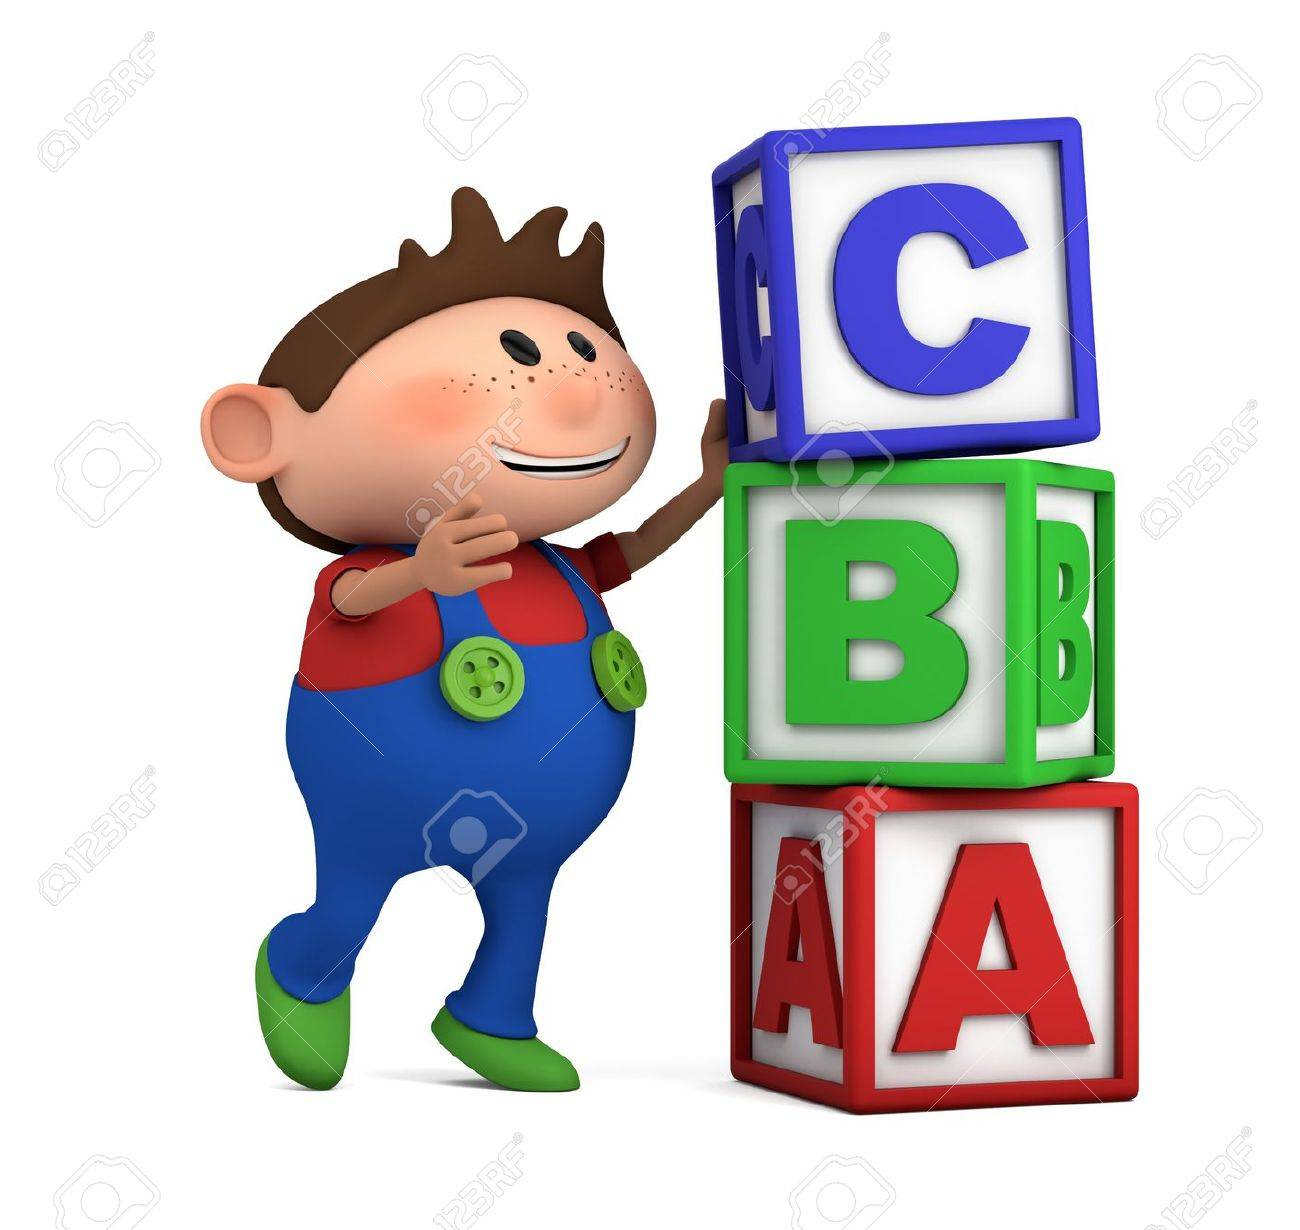 school boy stacking ABC blocks on top of each other - high quality 3d illustration Stock Photo - 10468433